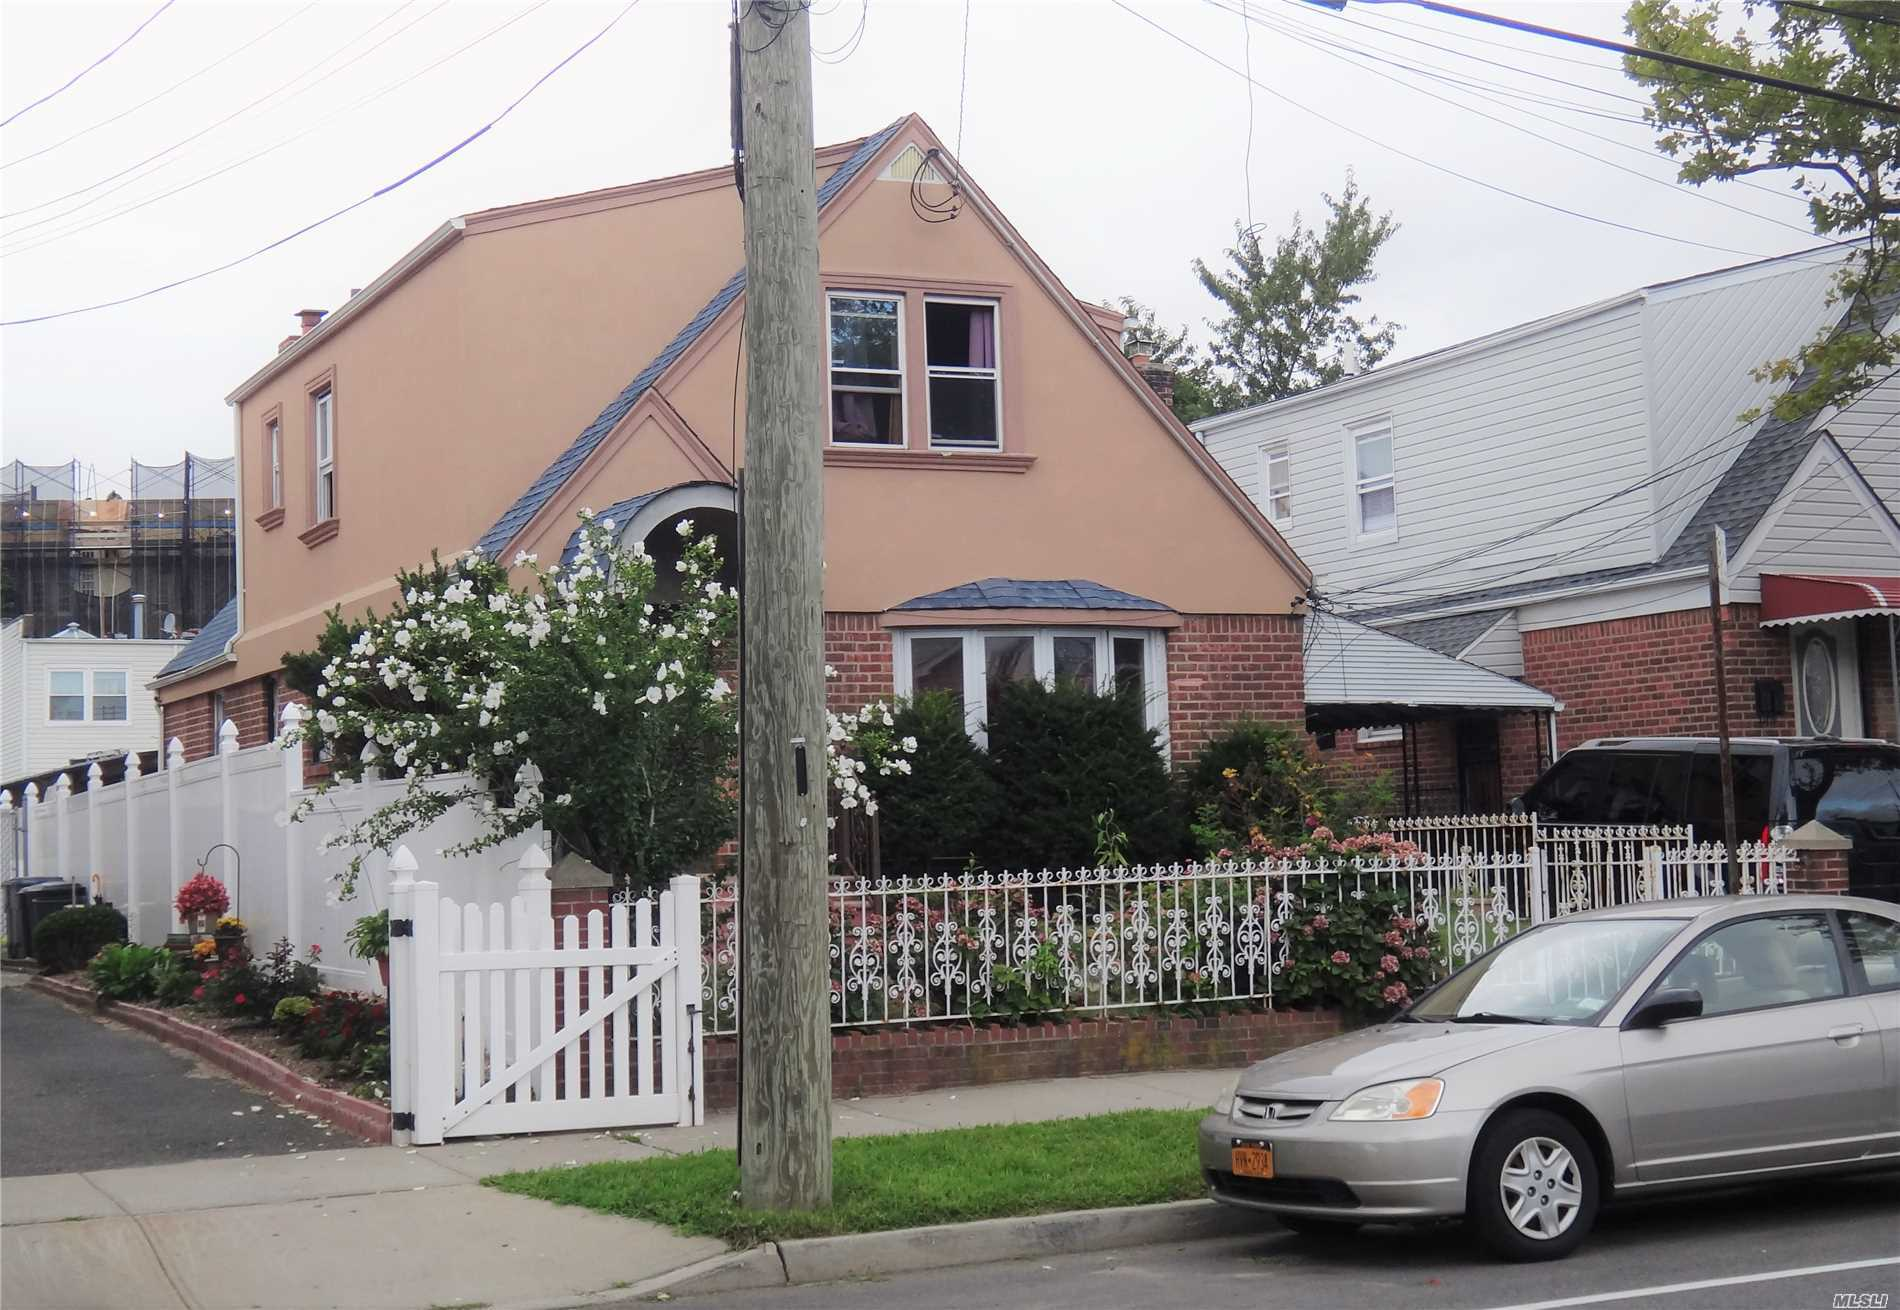 Huge Two Family In Quite Community Featuring Nice Sized Rooms, Hardwood Flooring On All Levels, Huge Full Finished Basement With Laundry Room And A Large Private Driveway That Leads To A Secured Oversized Backyard. Totally Vacant Upon Closing Of Title.